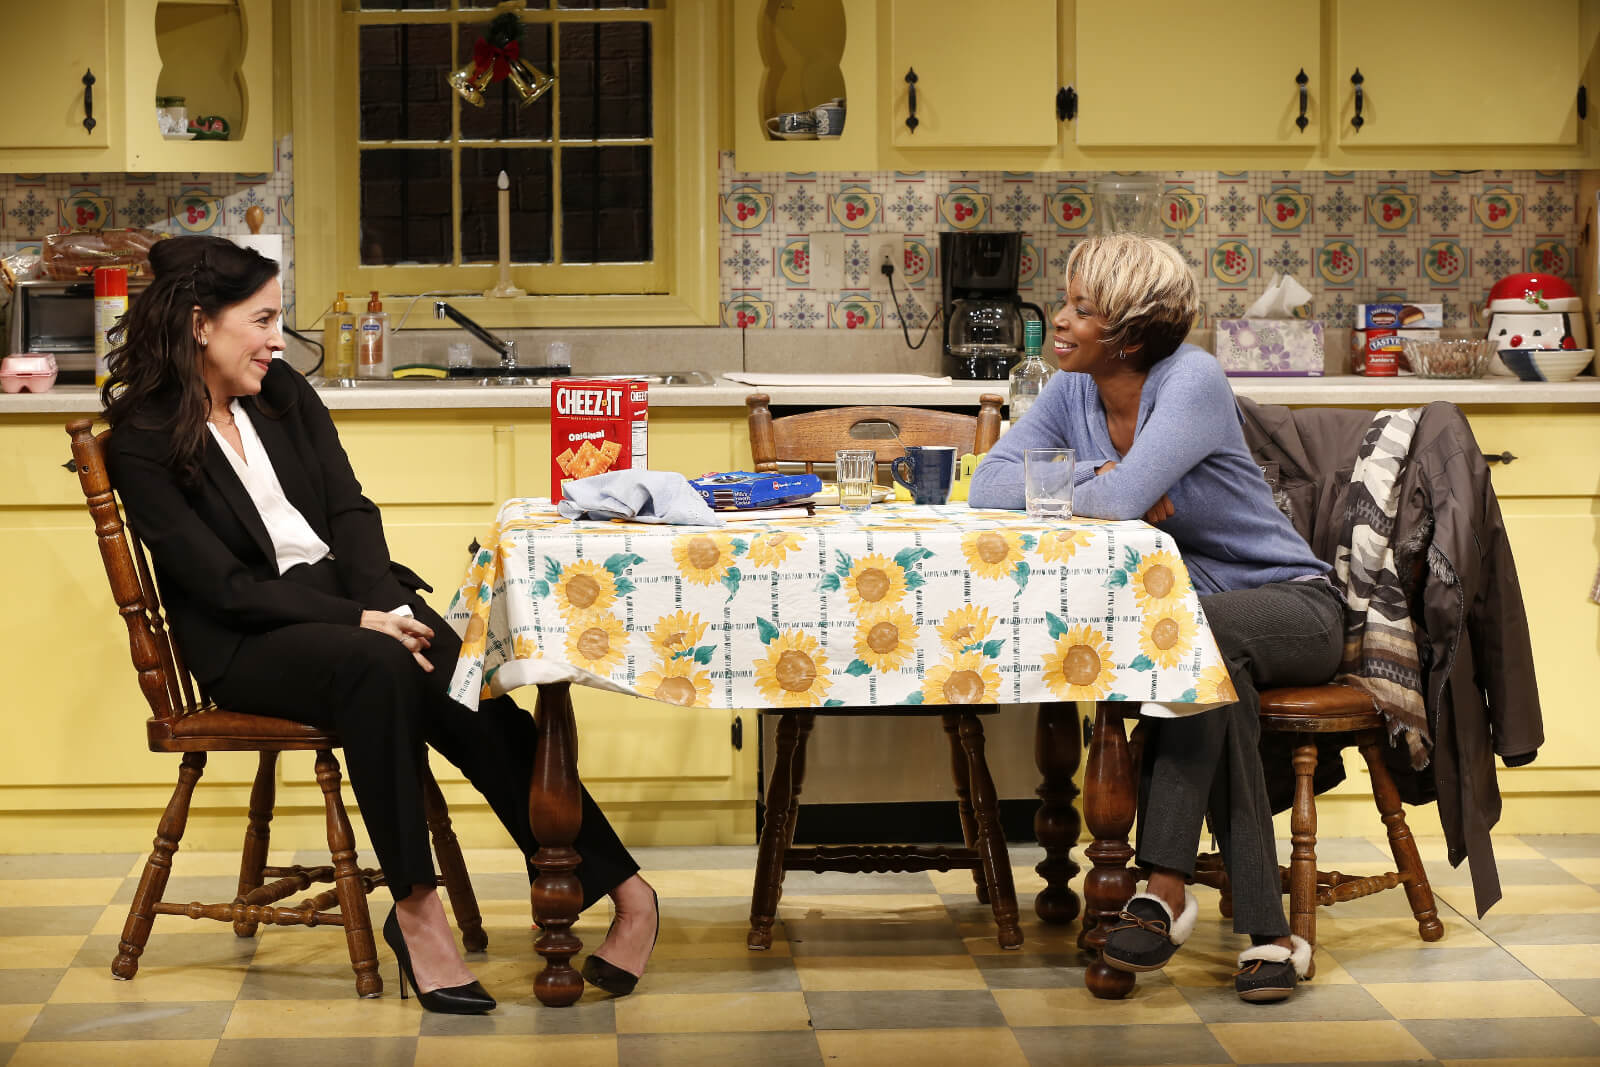 Jackie (Finnerty Steeves) and Shelly (Sharon Washington) smile at each other from the kitchen Table in Dot